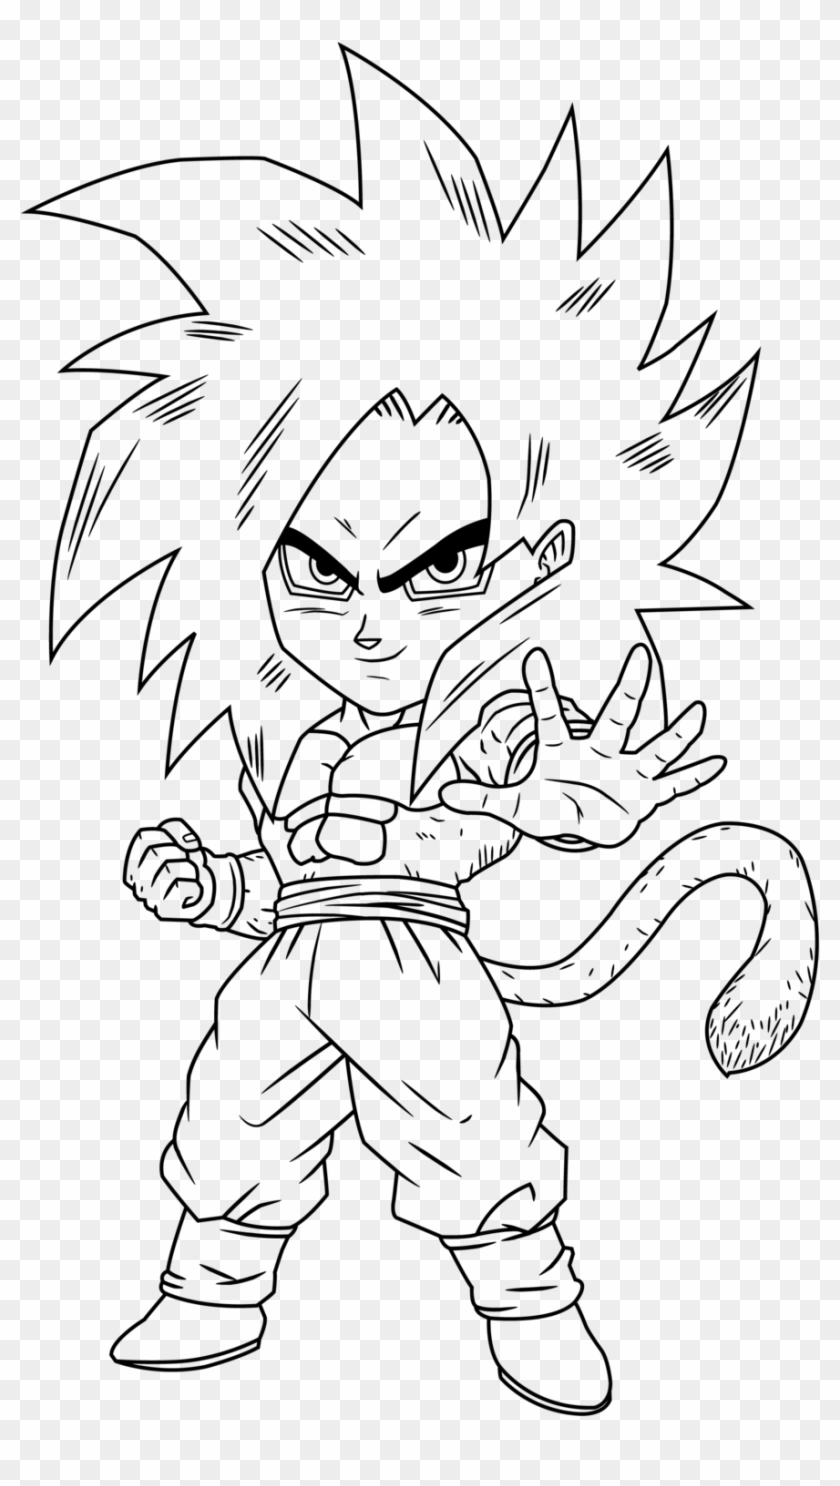 Ssj4 Gogeta Coloring Pages Coloring Home - Ssj4 Goku Drawings Chibi ...